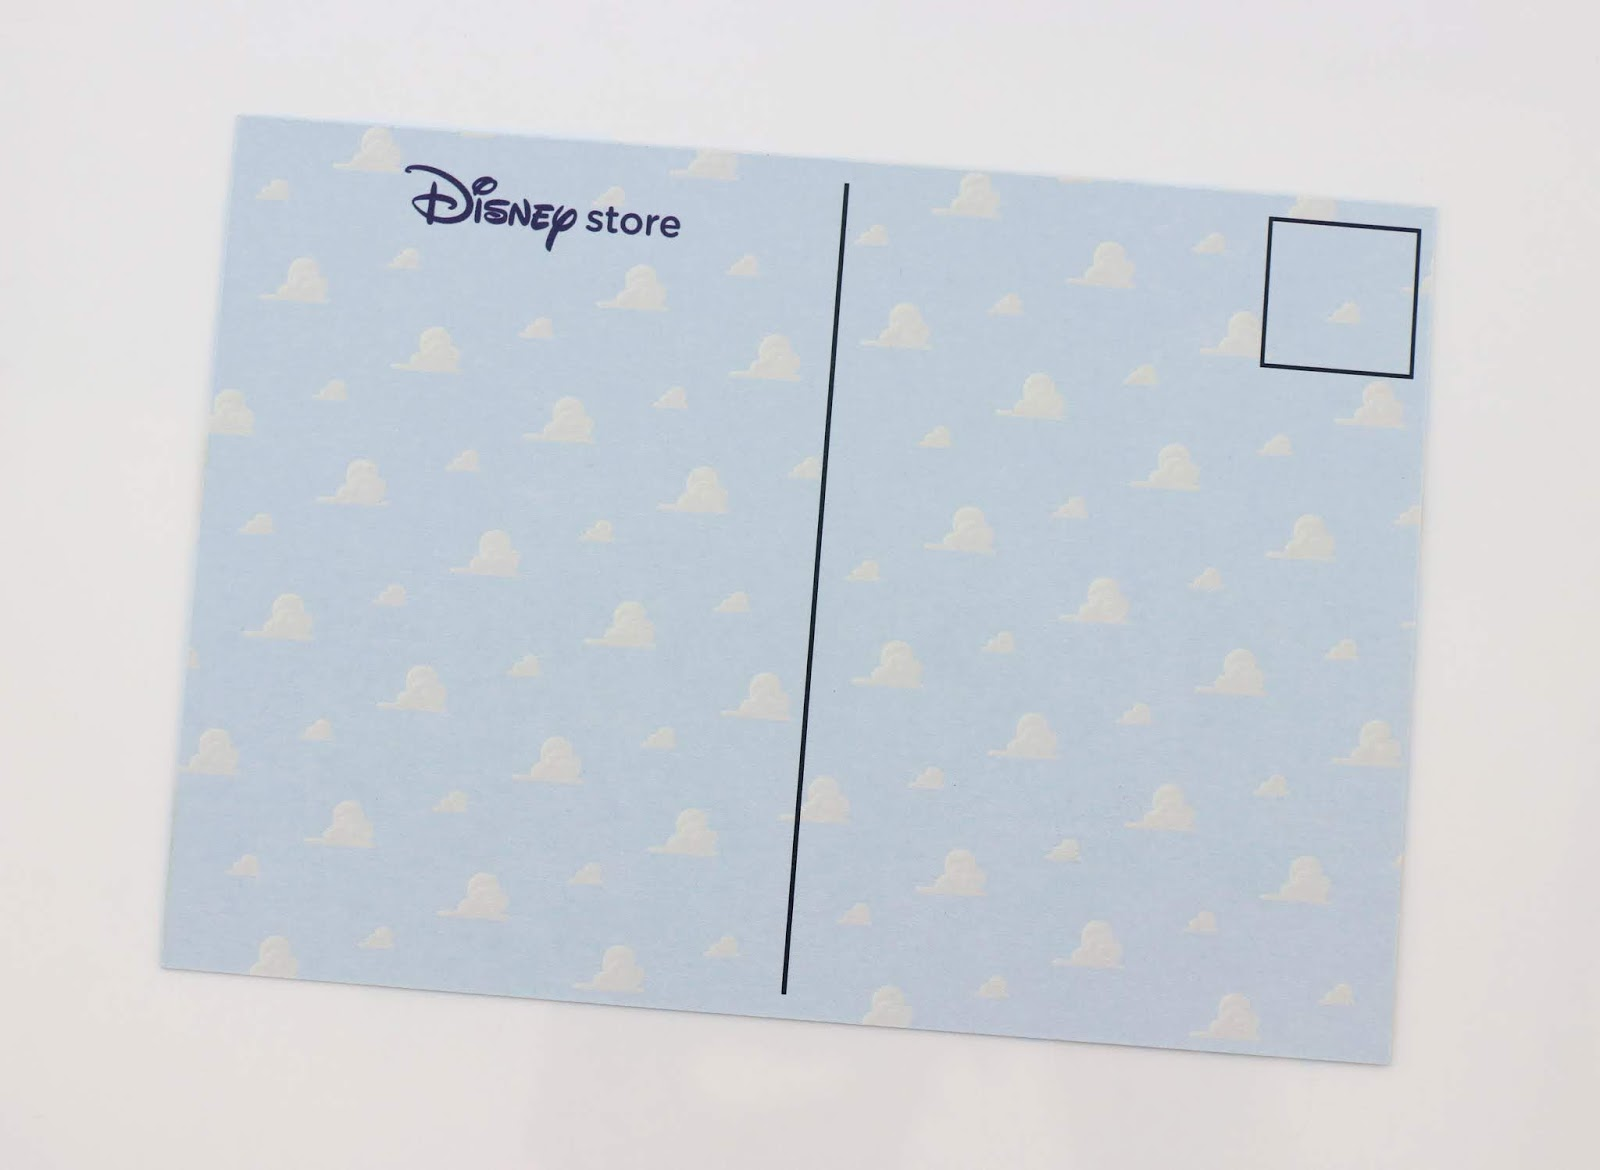 disney store toy story land event postcard